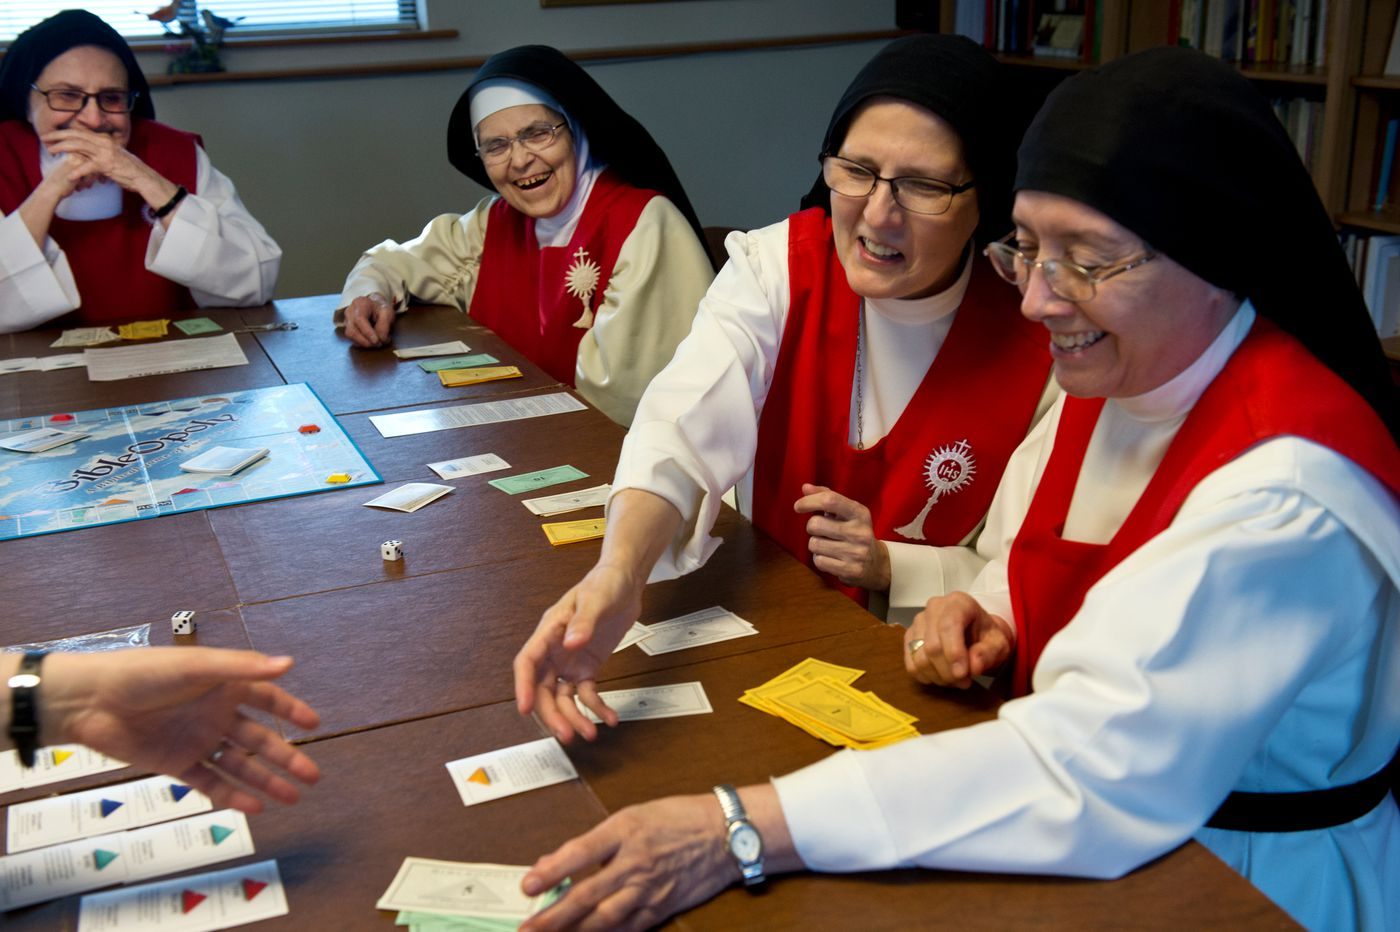 The Sisters of Perpetual Adoration play a board game called Bibleopoly during their recreation time on April 2. From left are Sister Alicia Valencia, Sister Milagrosa Veytia, Sister Evelia Martinez and Sister Catalina Marcor. (Marc Lester / ADN)